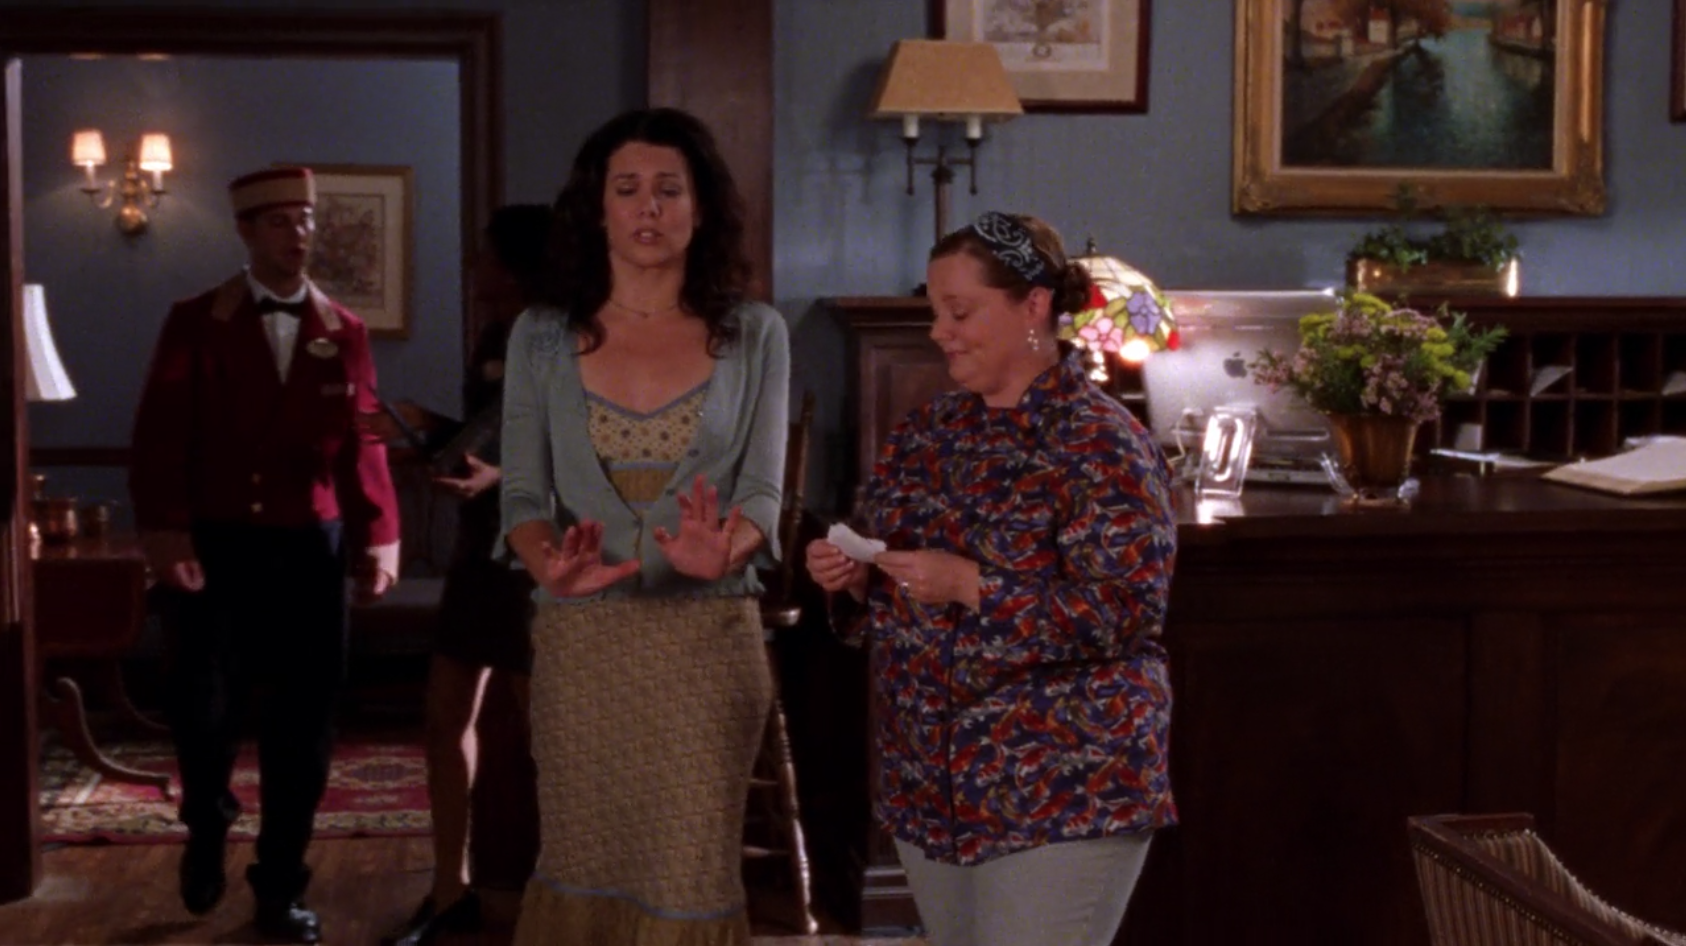 Lorelais-Hideous-Dress-Haunted-Leg-Gilmore-Girls